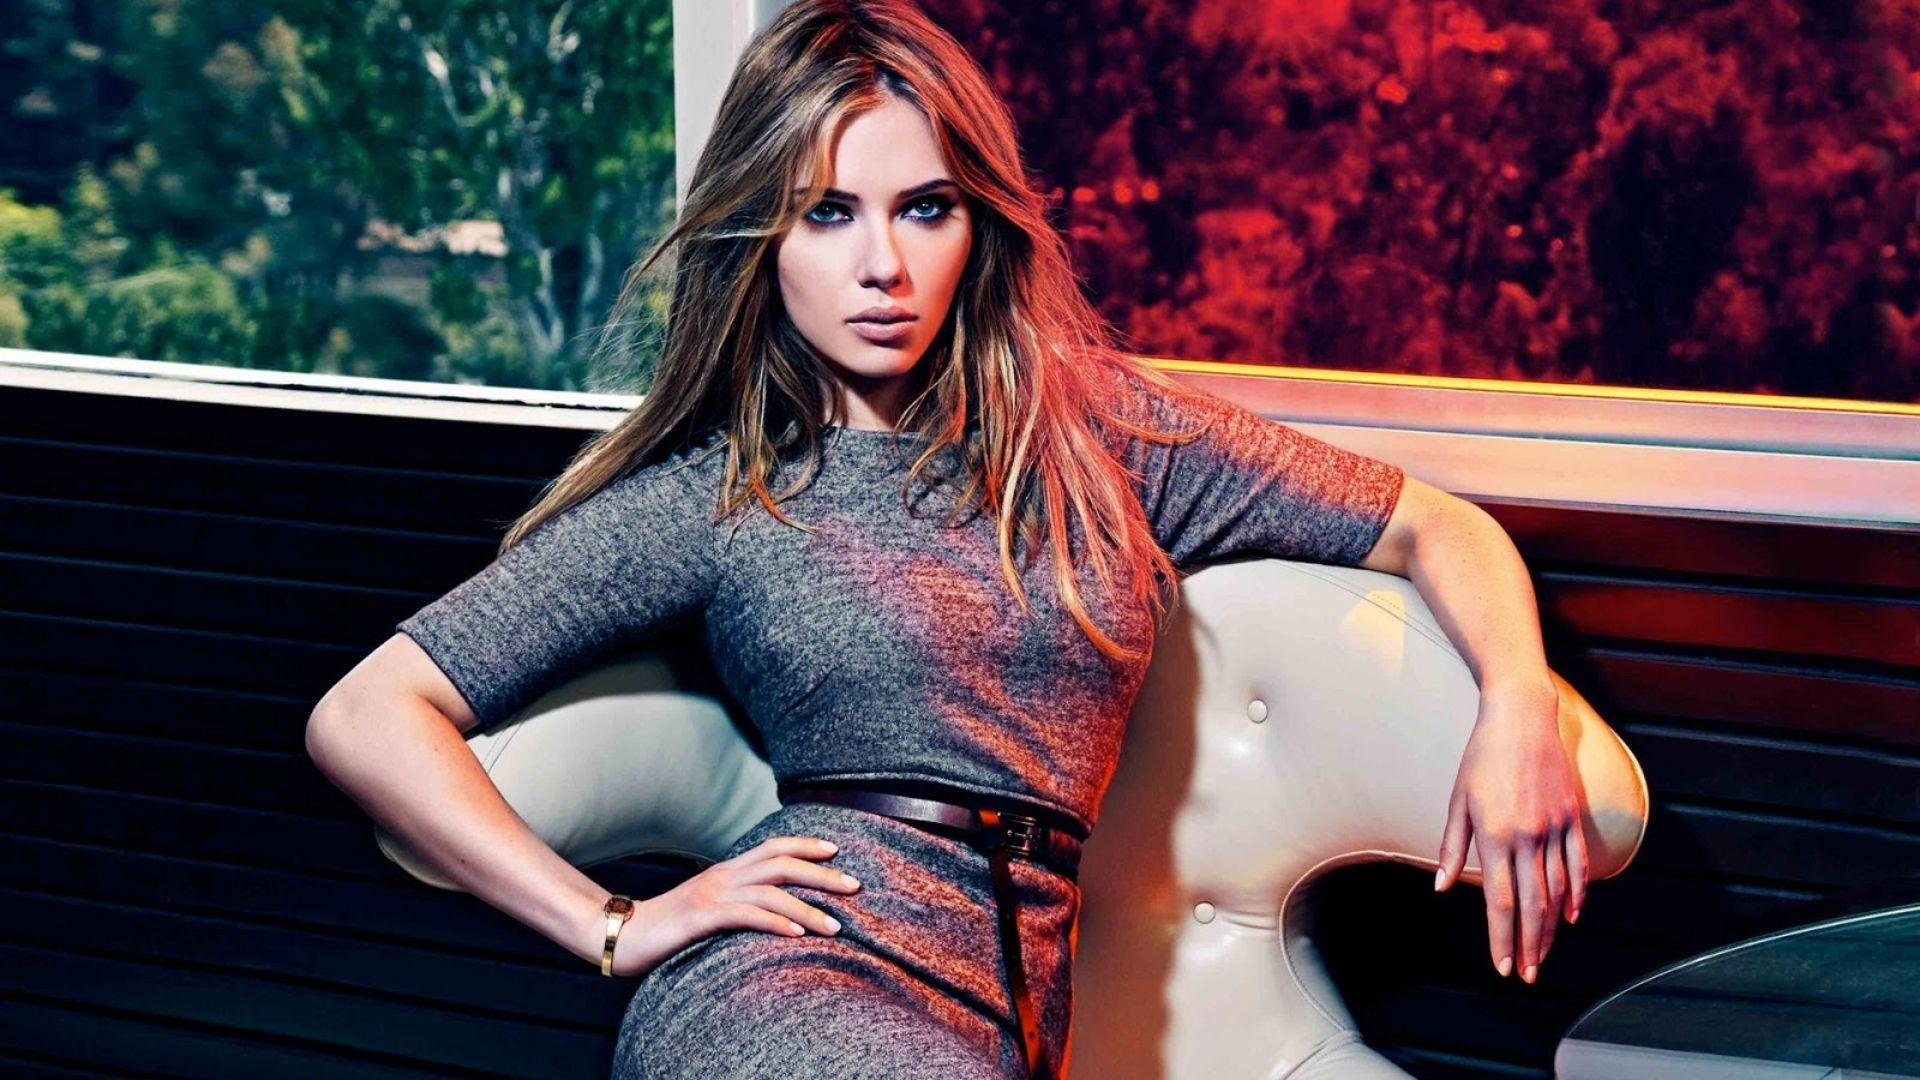 Top 10 Best Scarlett Johansson Movies of all time